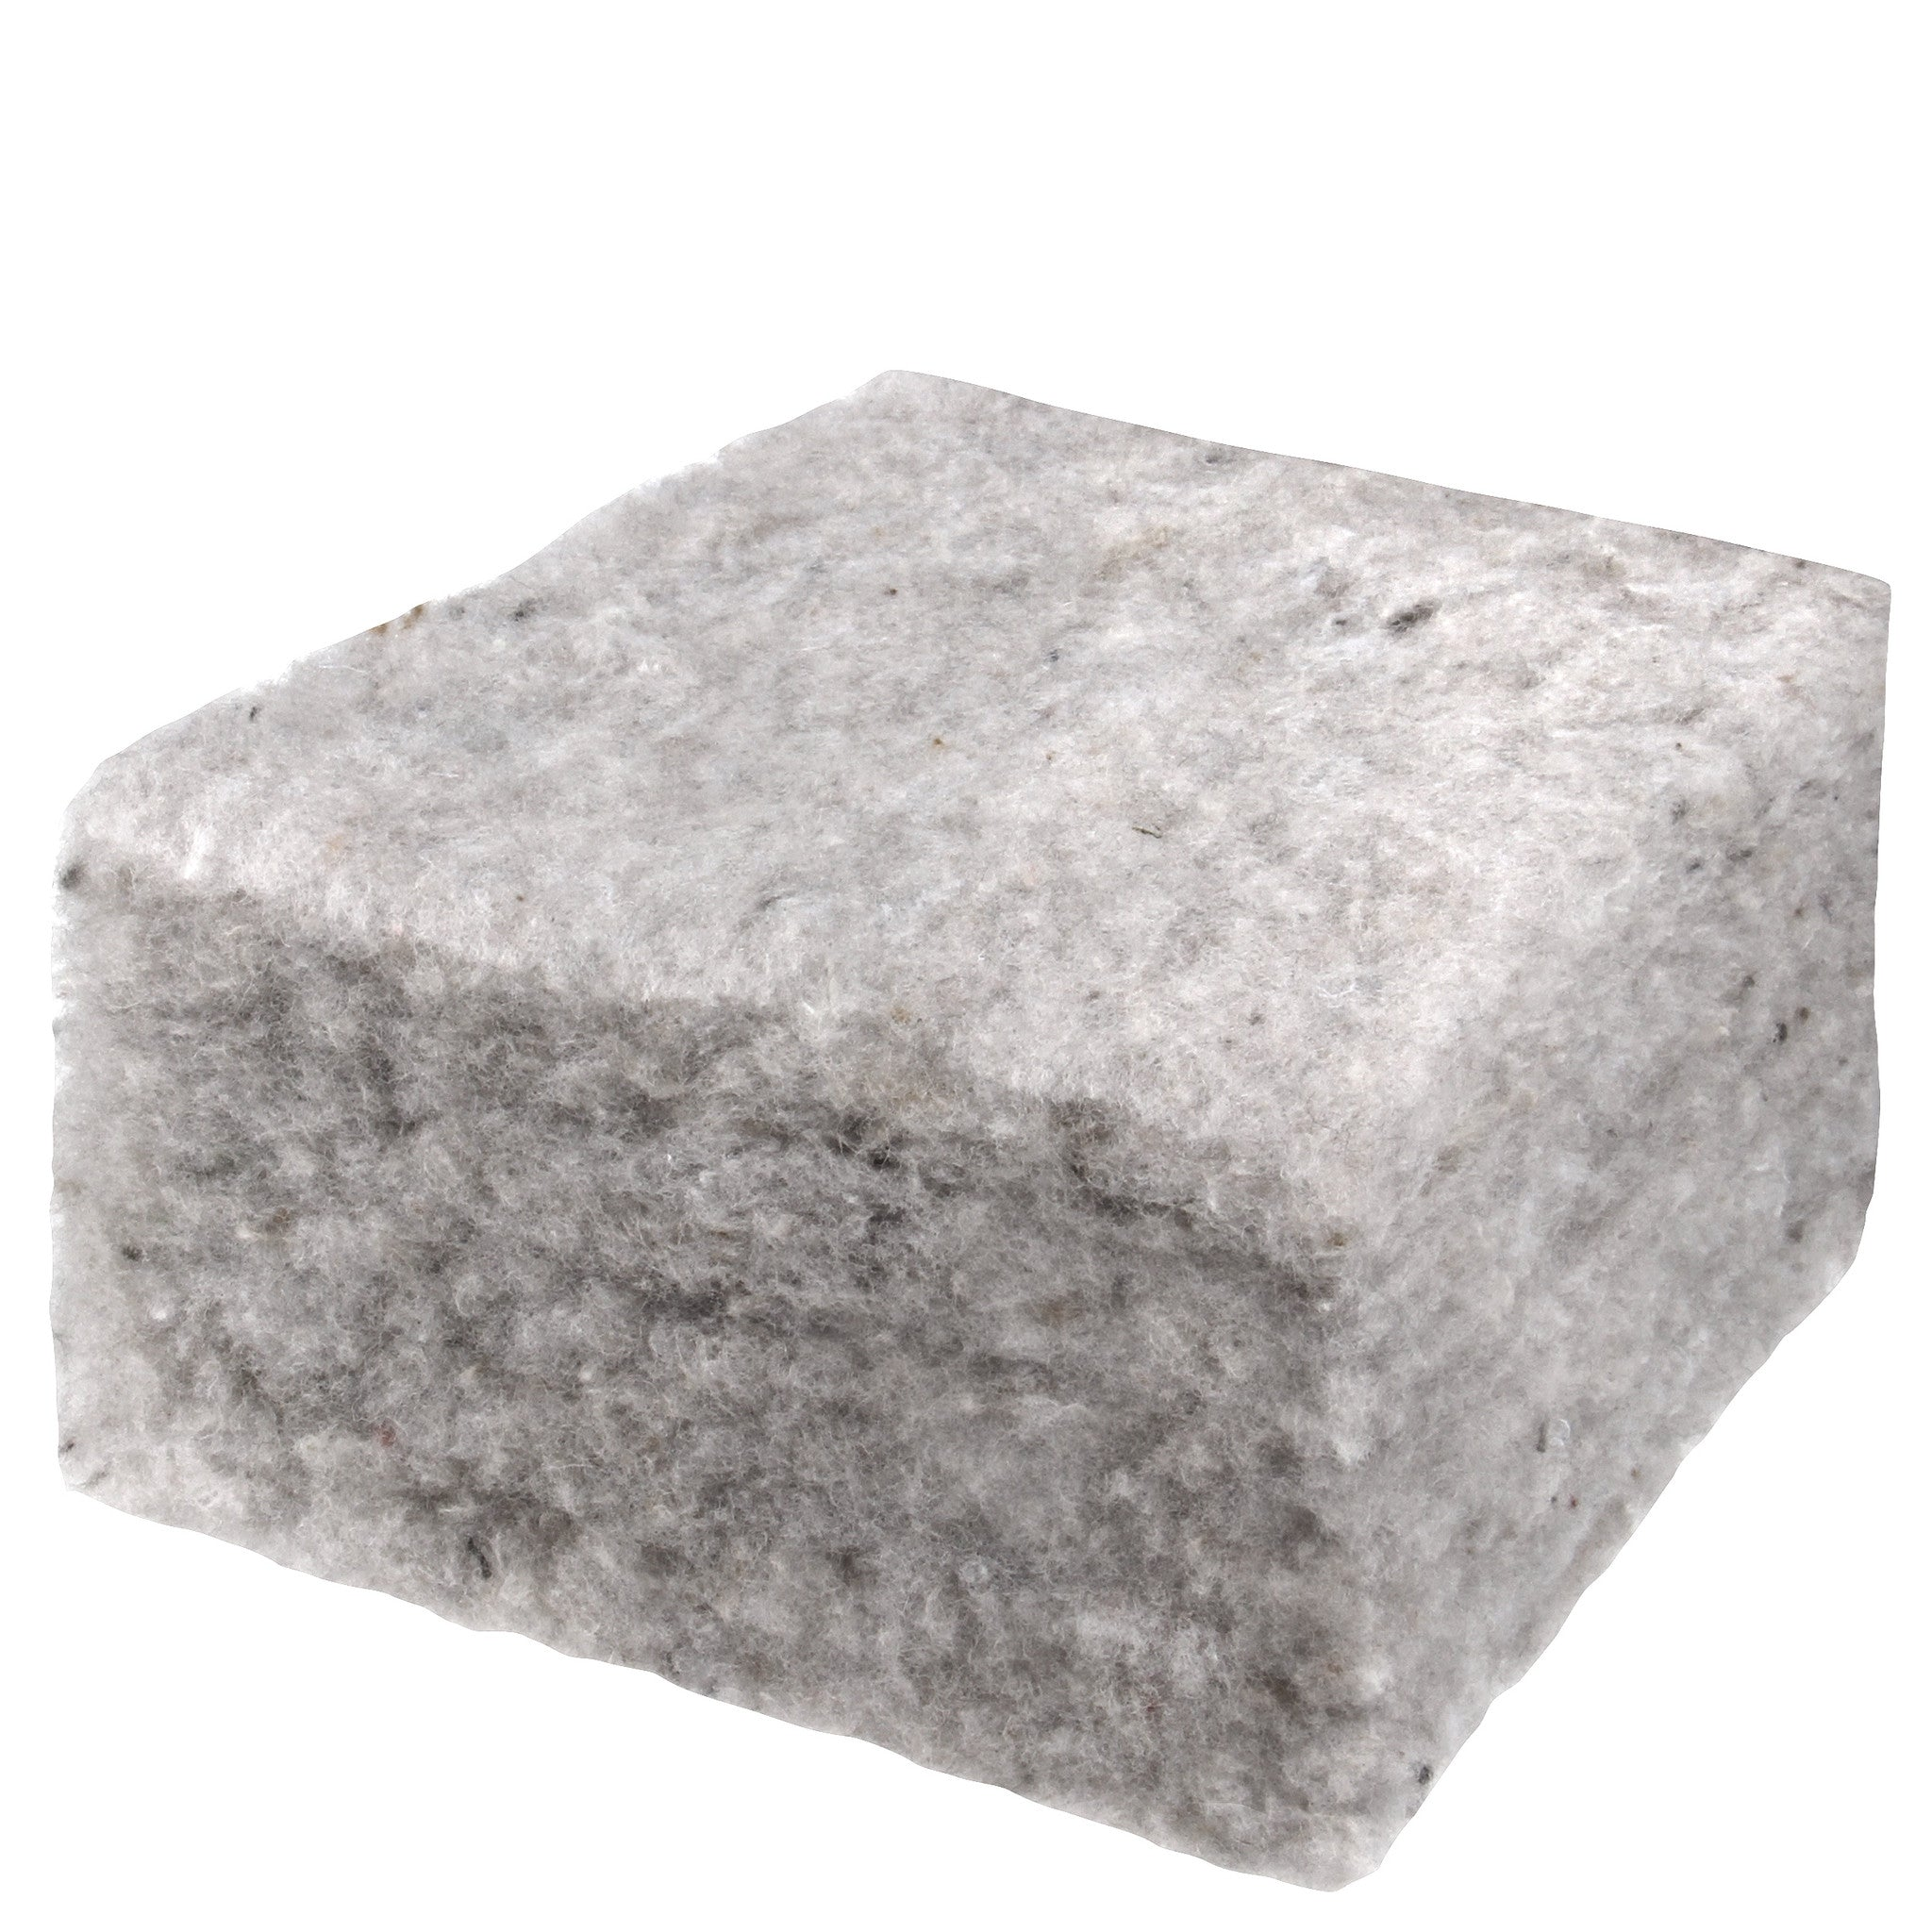 Realwool insulation